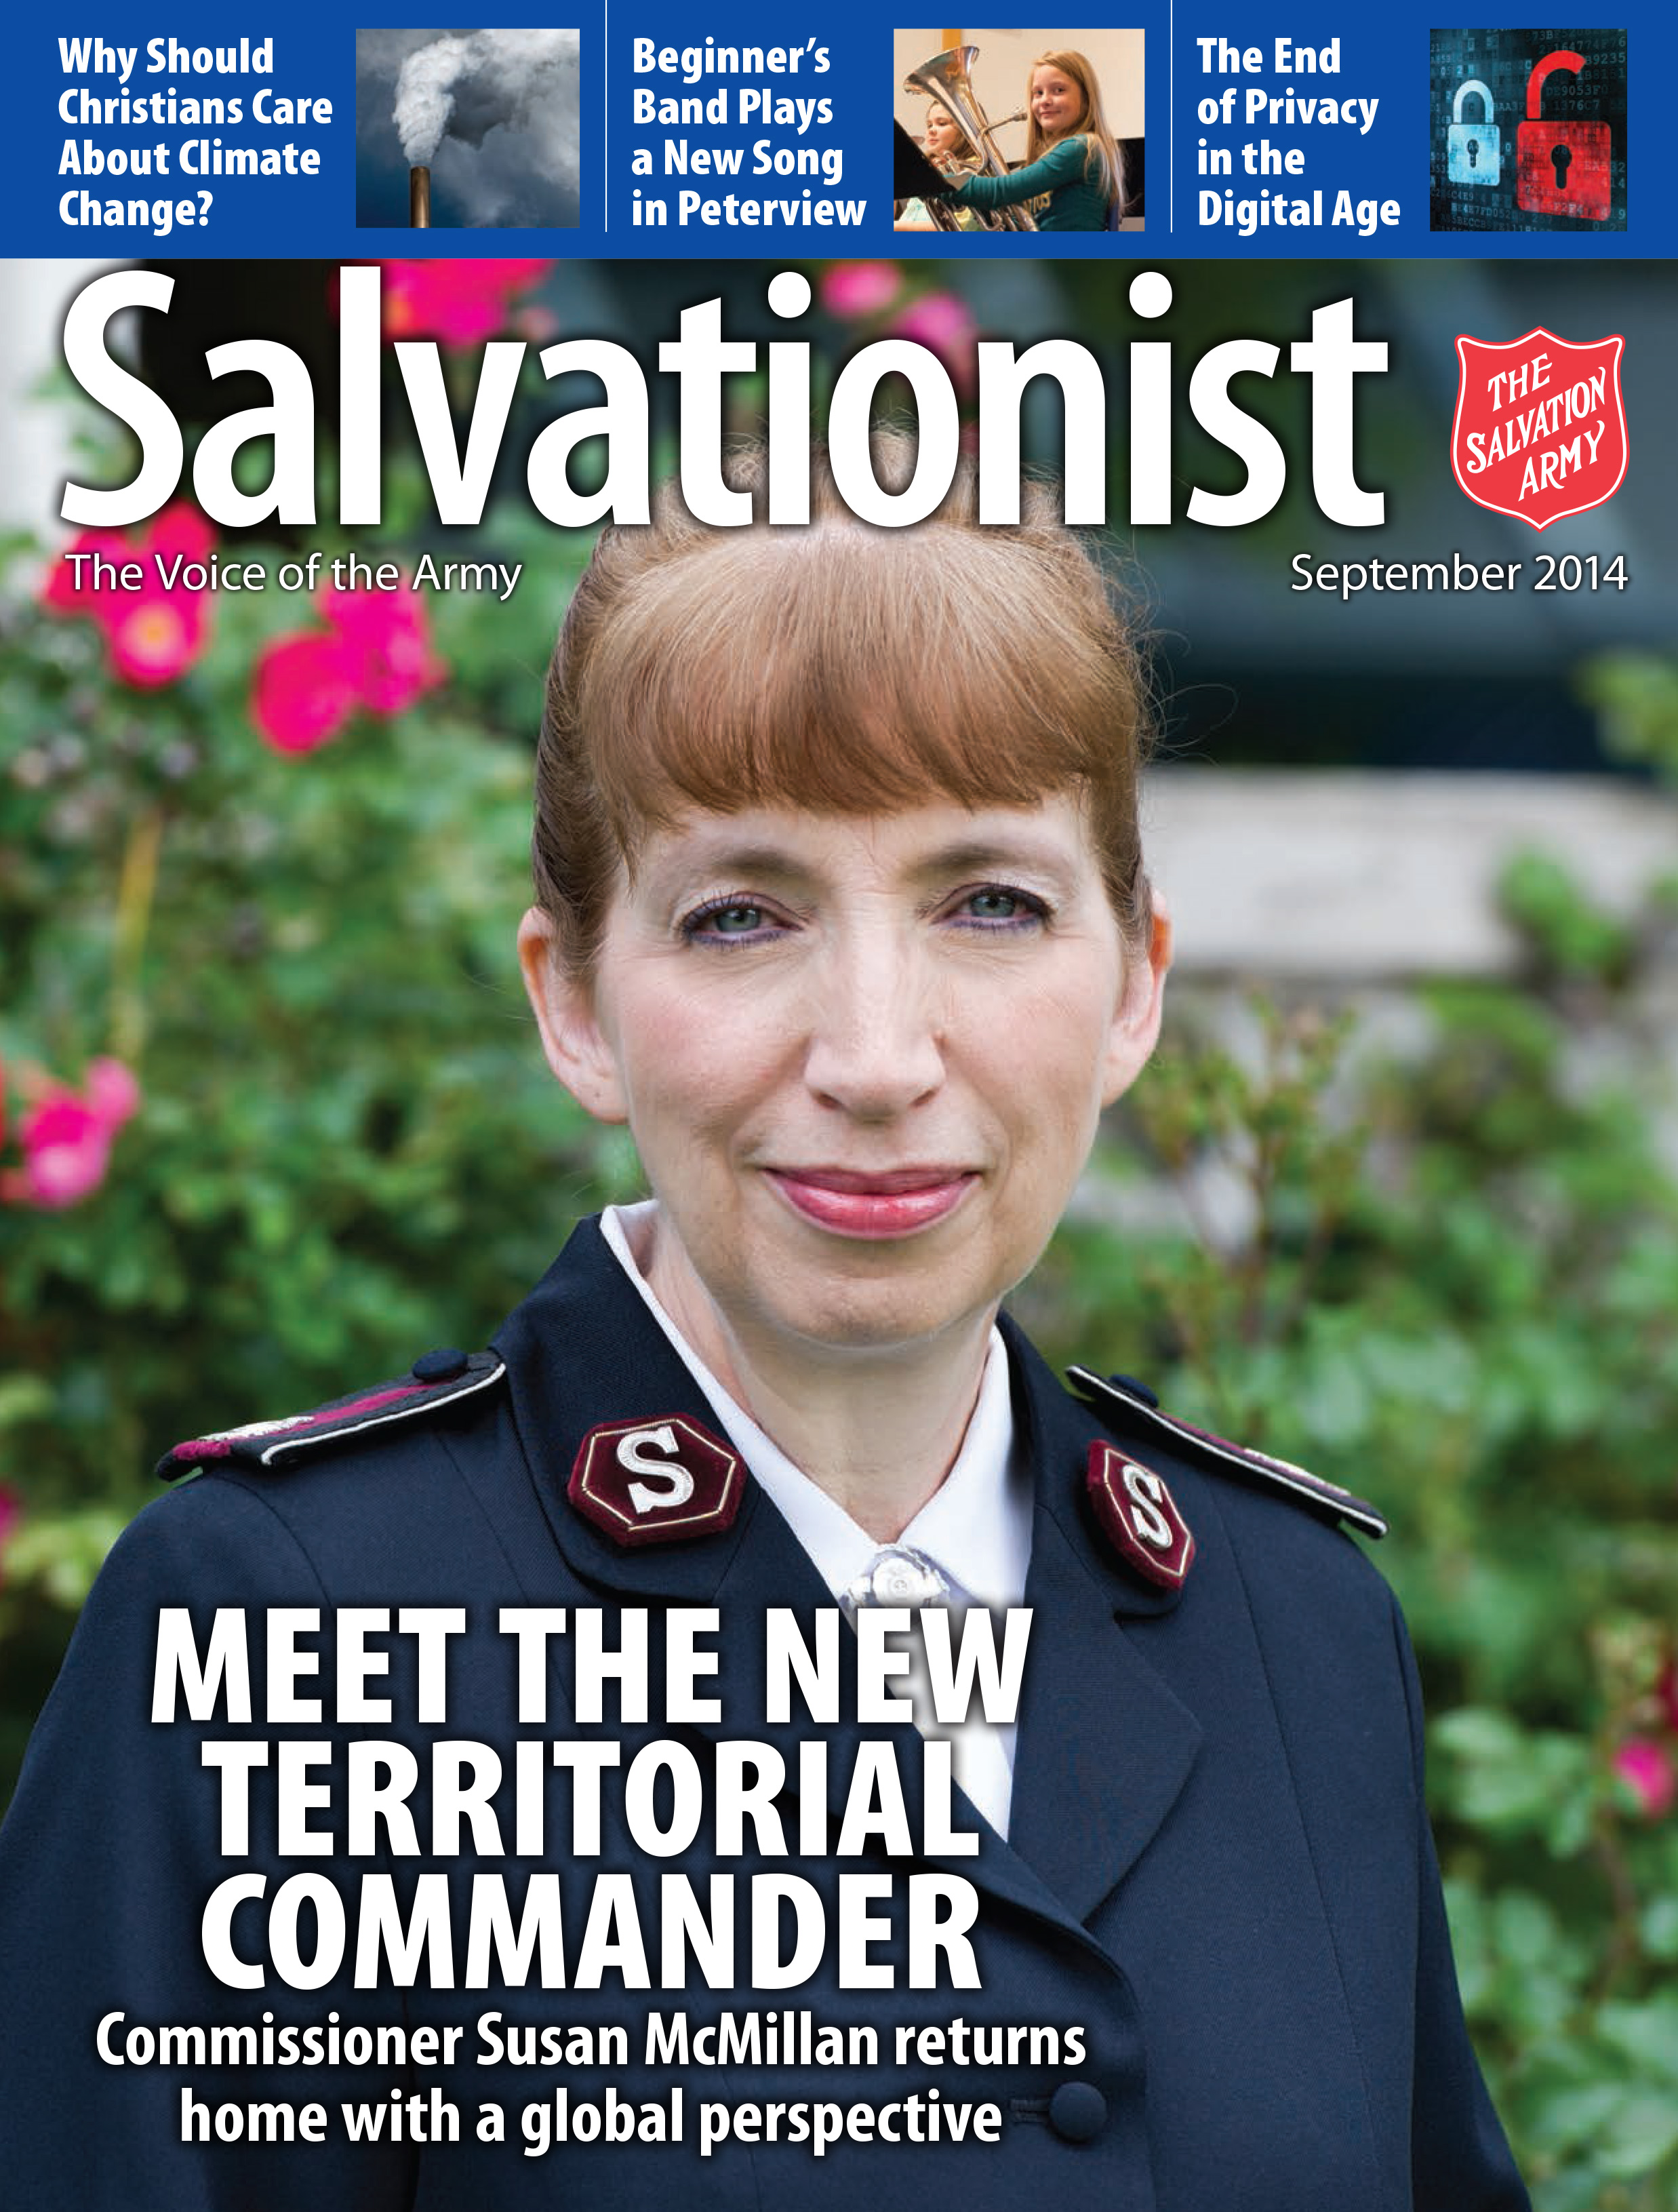 Cover for the September 2014 issue of Salvationist